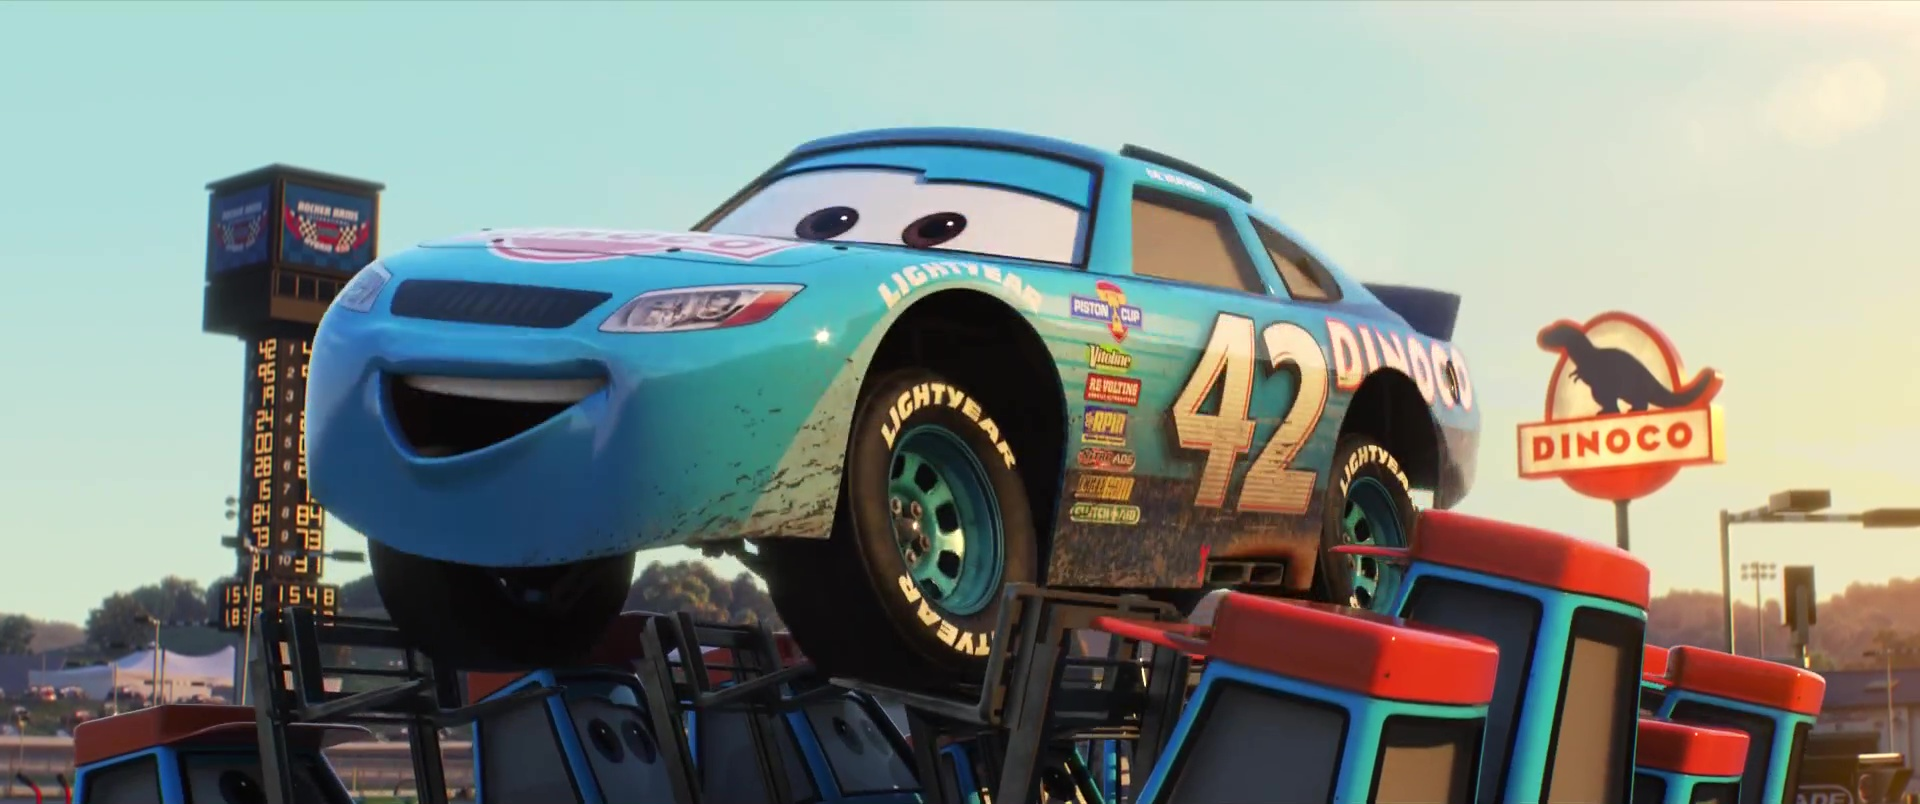 cal-weathers-personnage-cars-3-04